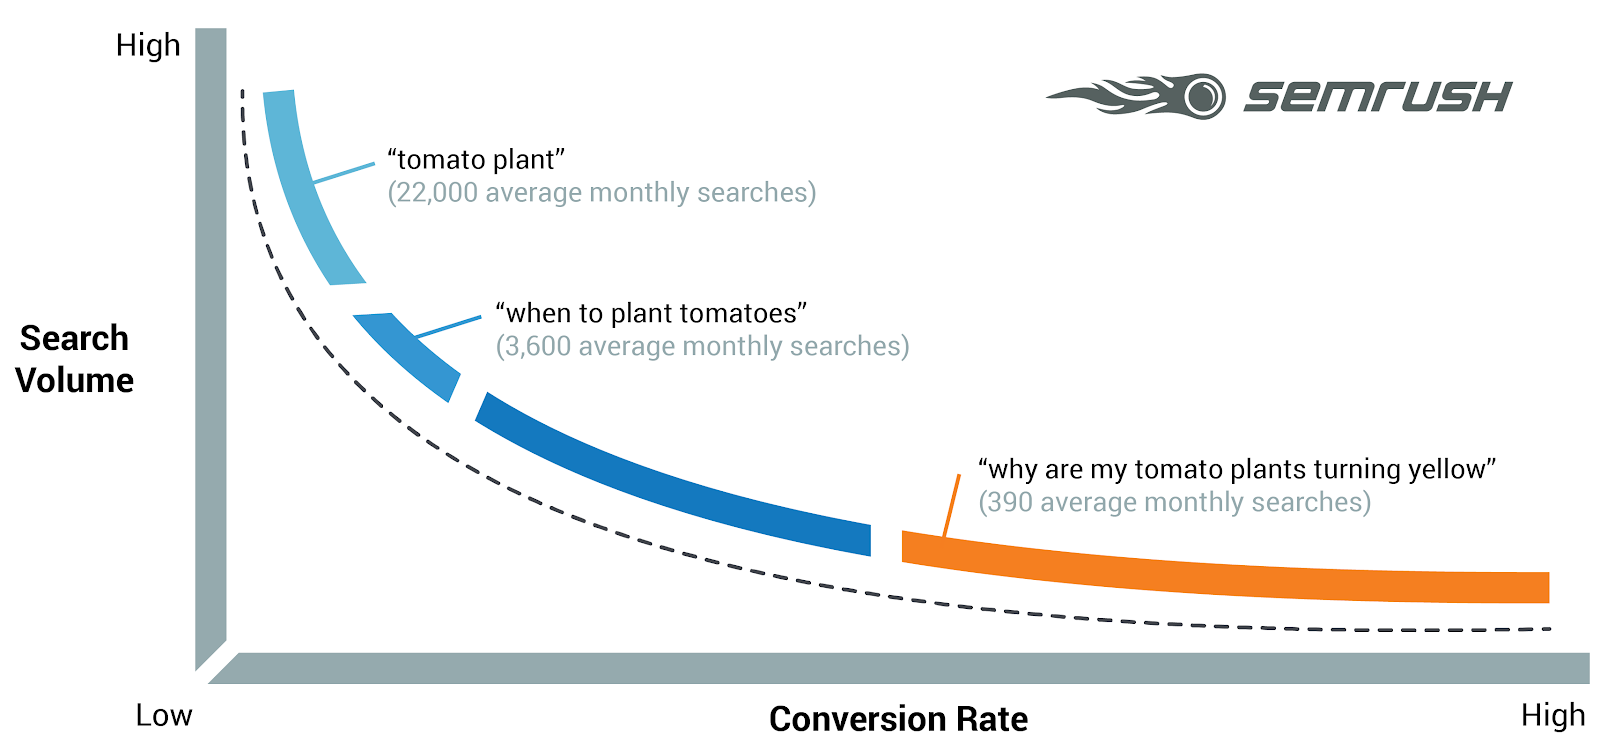 With long tail keywords gets better conversion rates